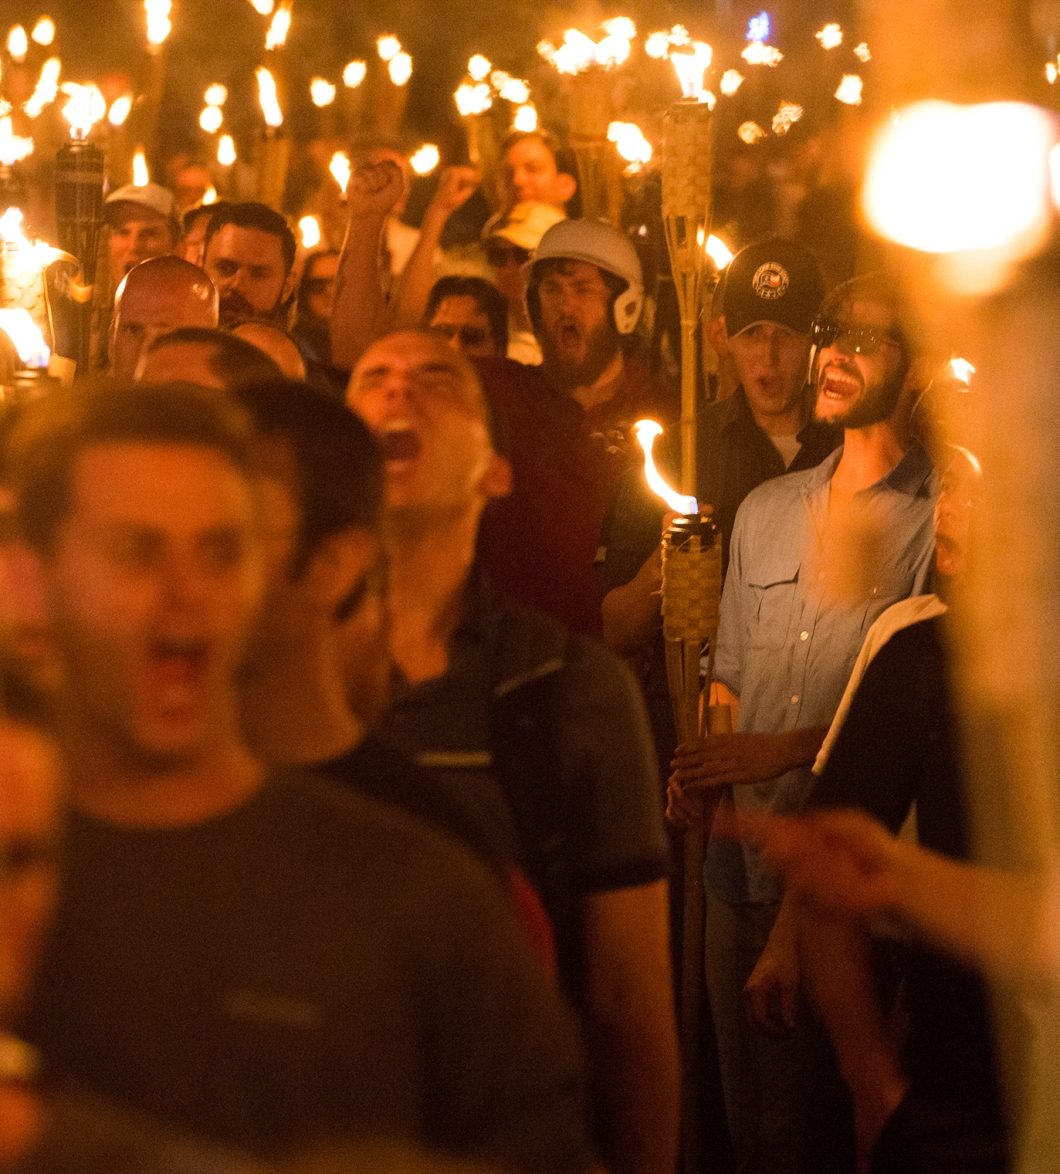 The 'Unite the Right' rally in Charlottesville